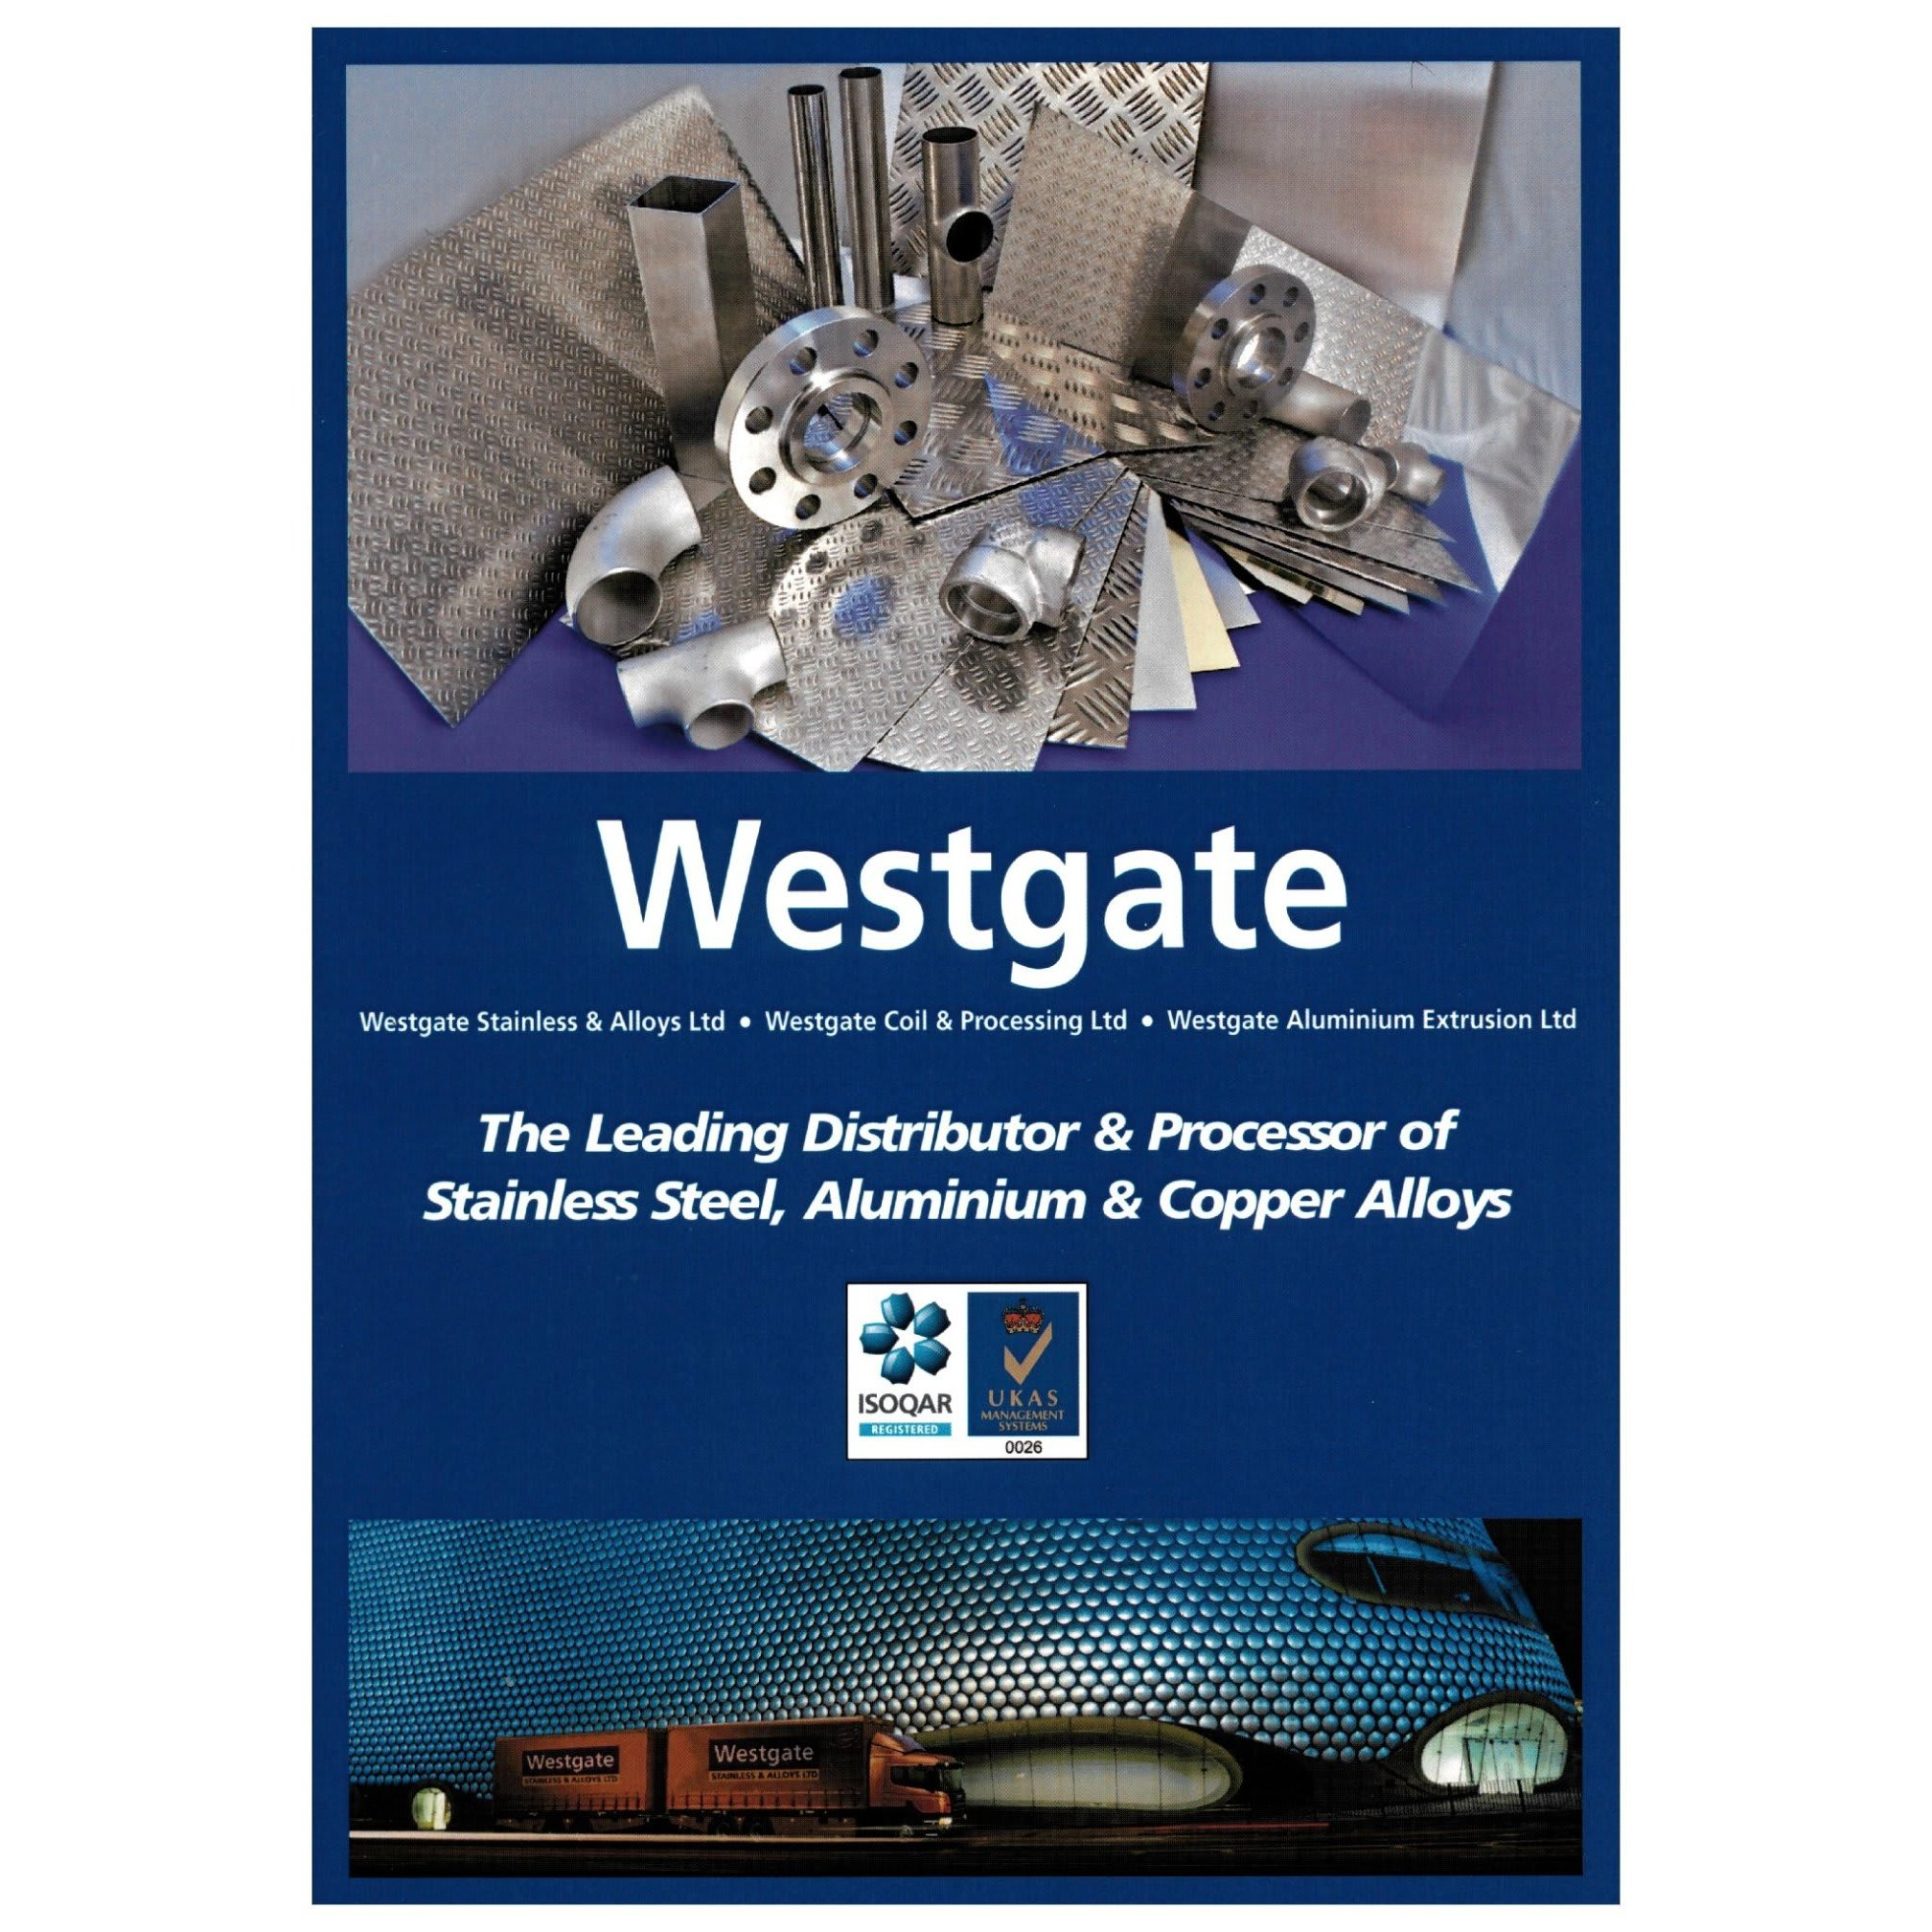 Westgate Stainless & Alloys Ltd - Walsall, West Midlands WS9 8BG - 01922 745664 | ShowMeLocal.com